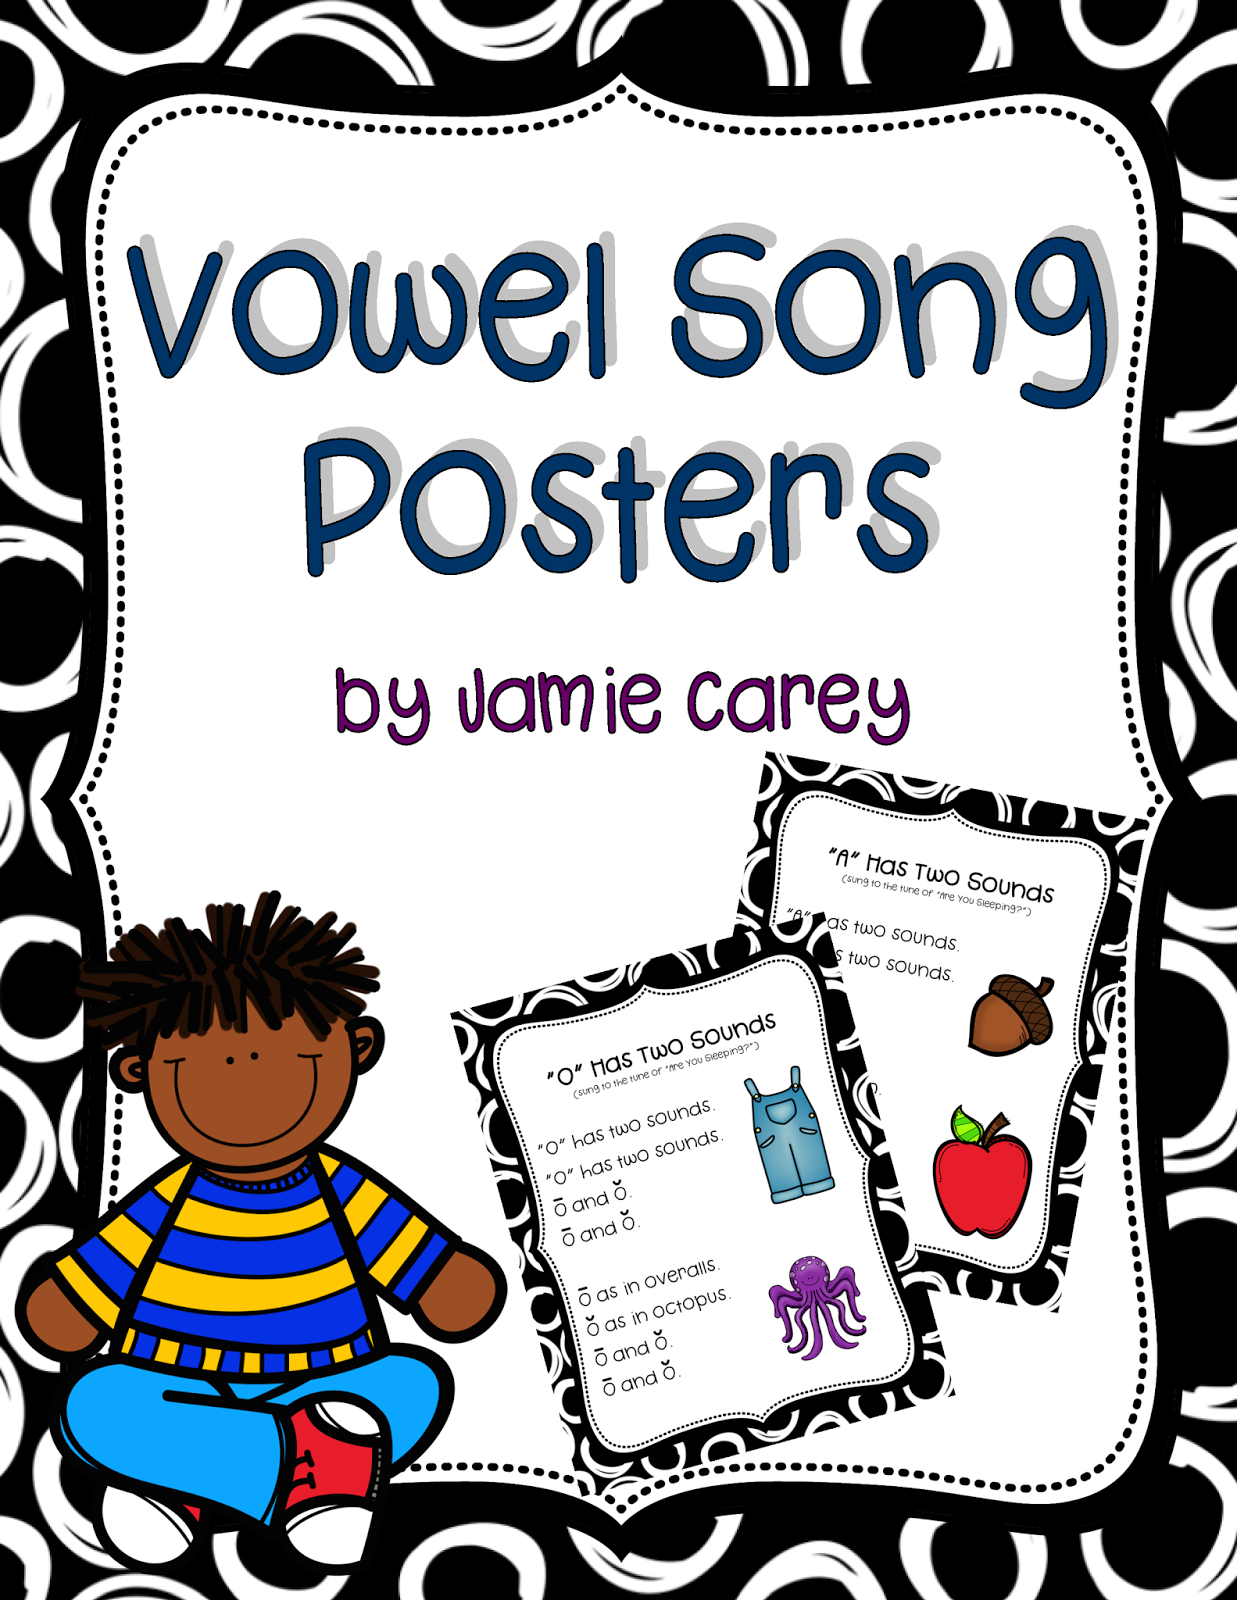 http://www.teacherspayteachers.com/Product/Vowel-Song-Posters-1520871